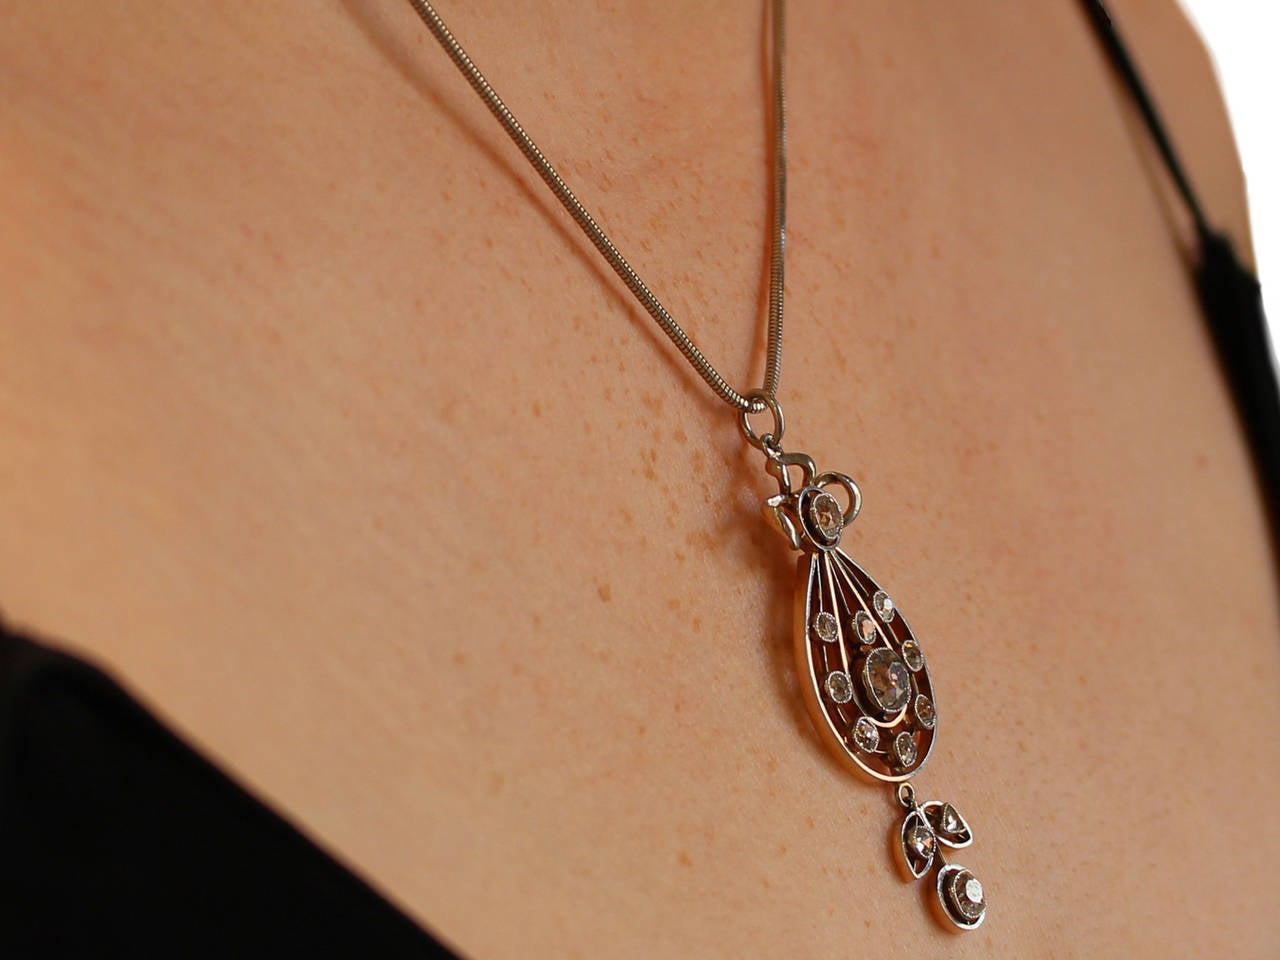 1880s Antique Victorian 2.14 Carat Diamond and 15k Yellow Gold Pendant  For Sale 5